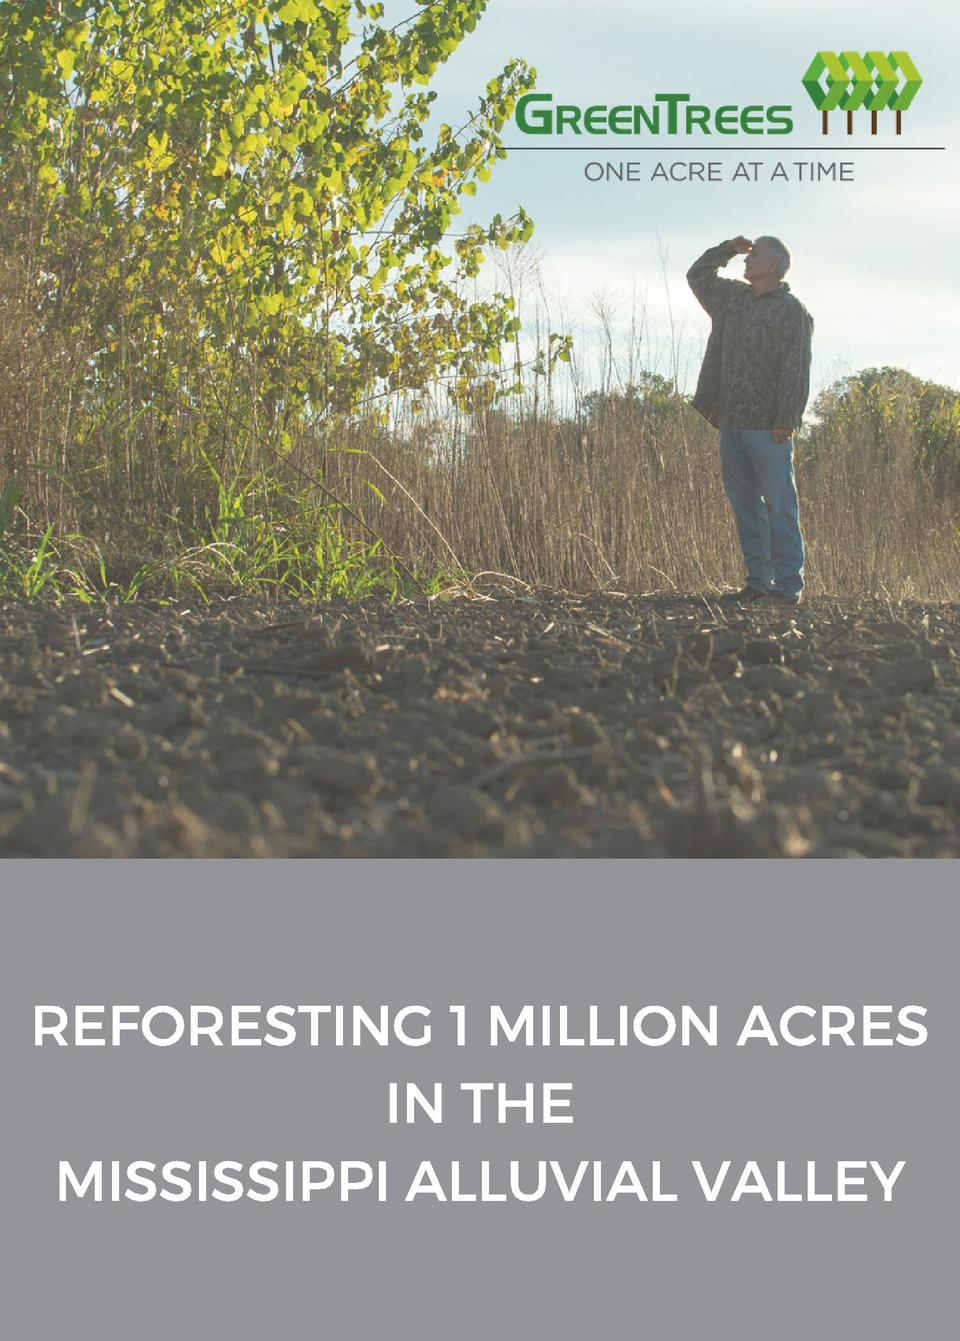 REFORESTING 1 MILLION ACRES IN THE MISSISSIPPI ALLUVIAL VALLEY